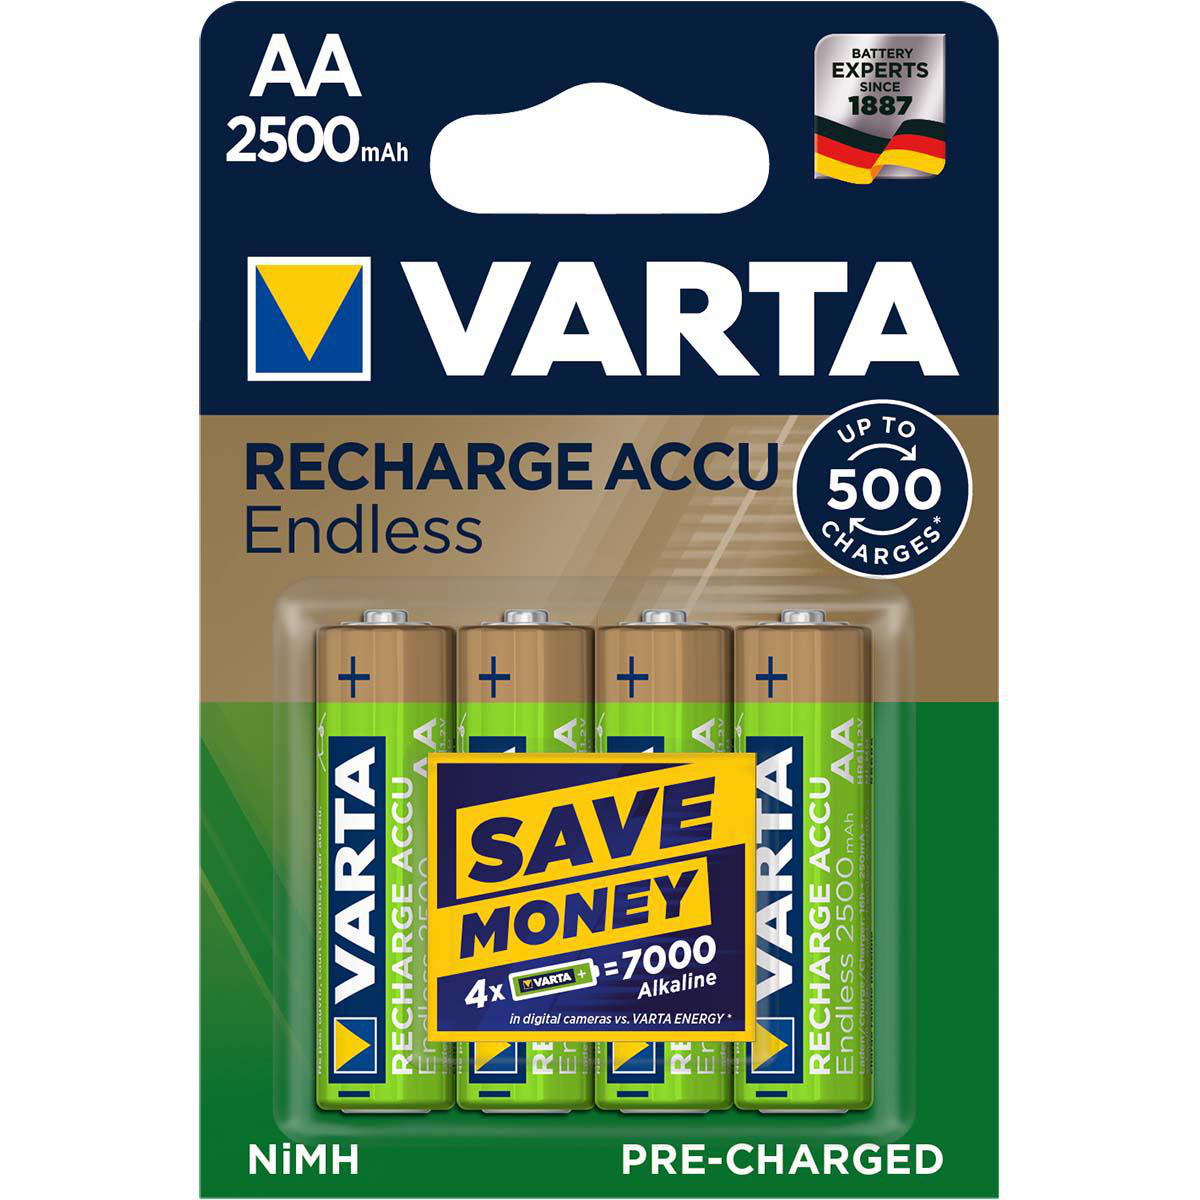 Varta Accu Endless, Pre-charged, Retail Blister (4-Pack)